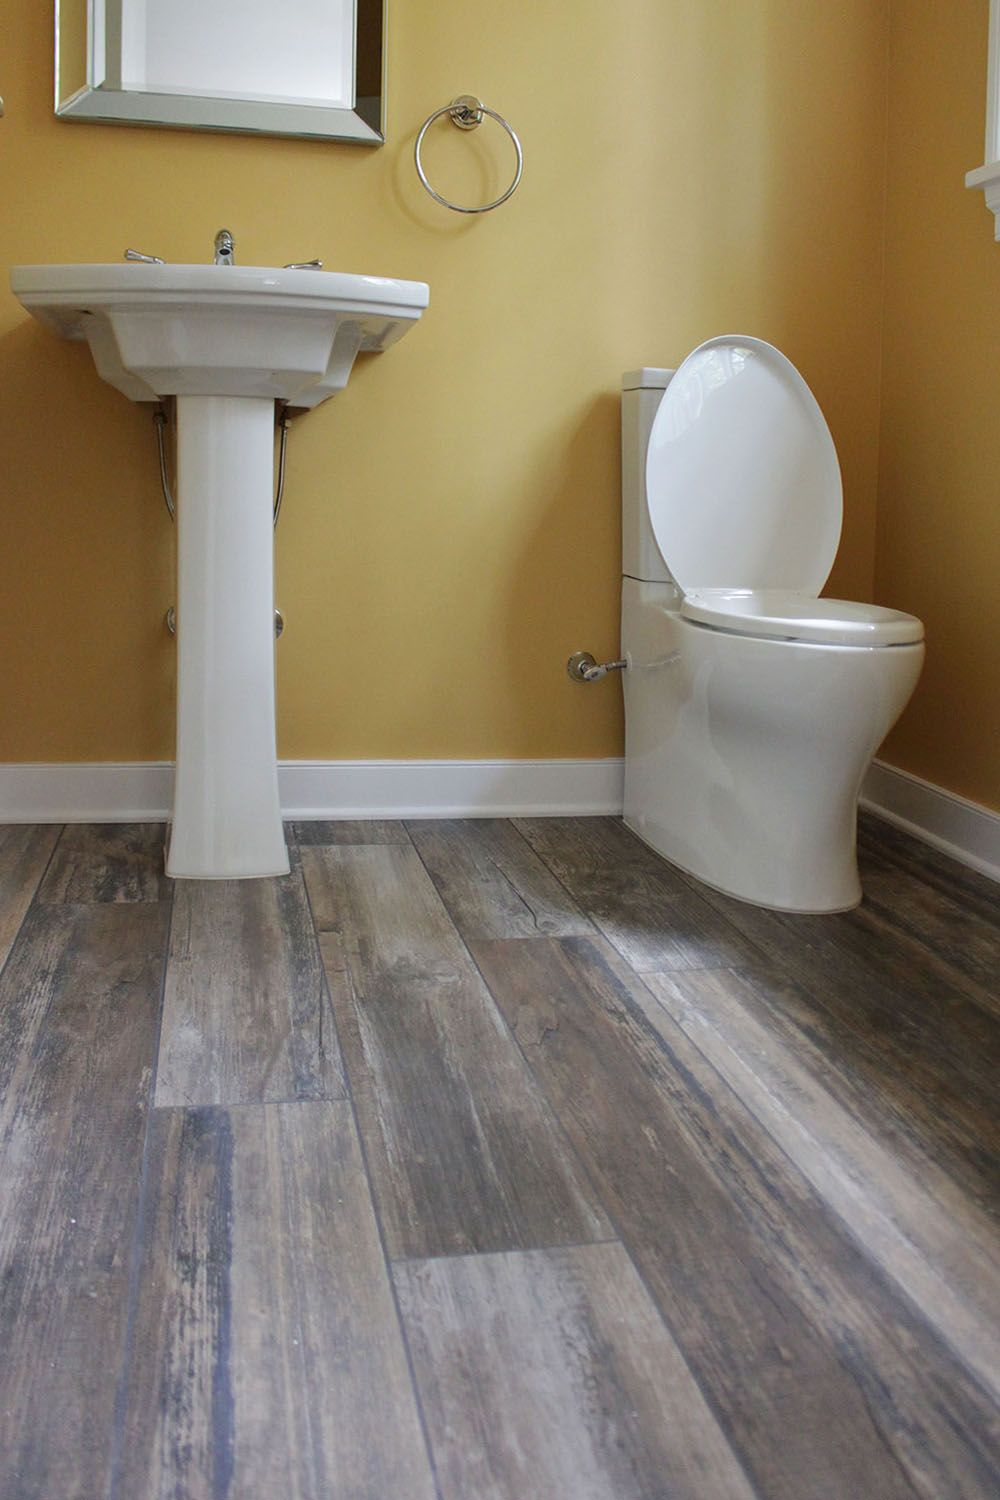 IMG_5226-2-porcelain-tile-mediterranean-plank-bathroom-d-and-s-flooring-compressor.jpg